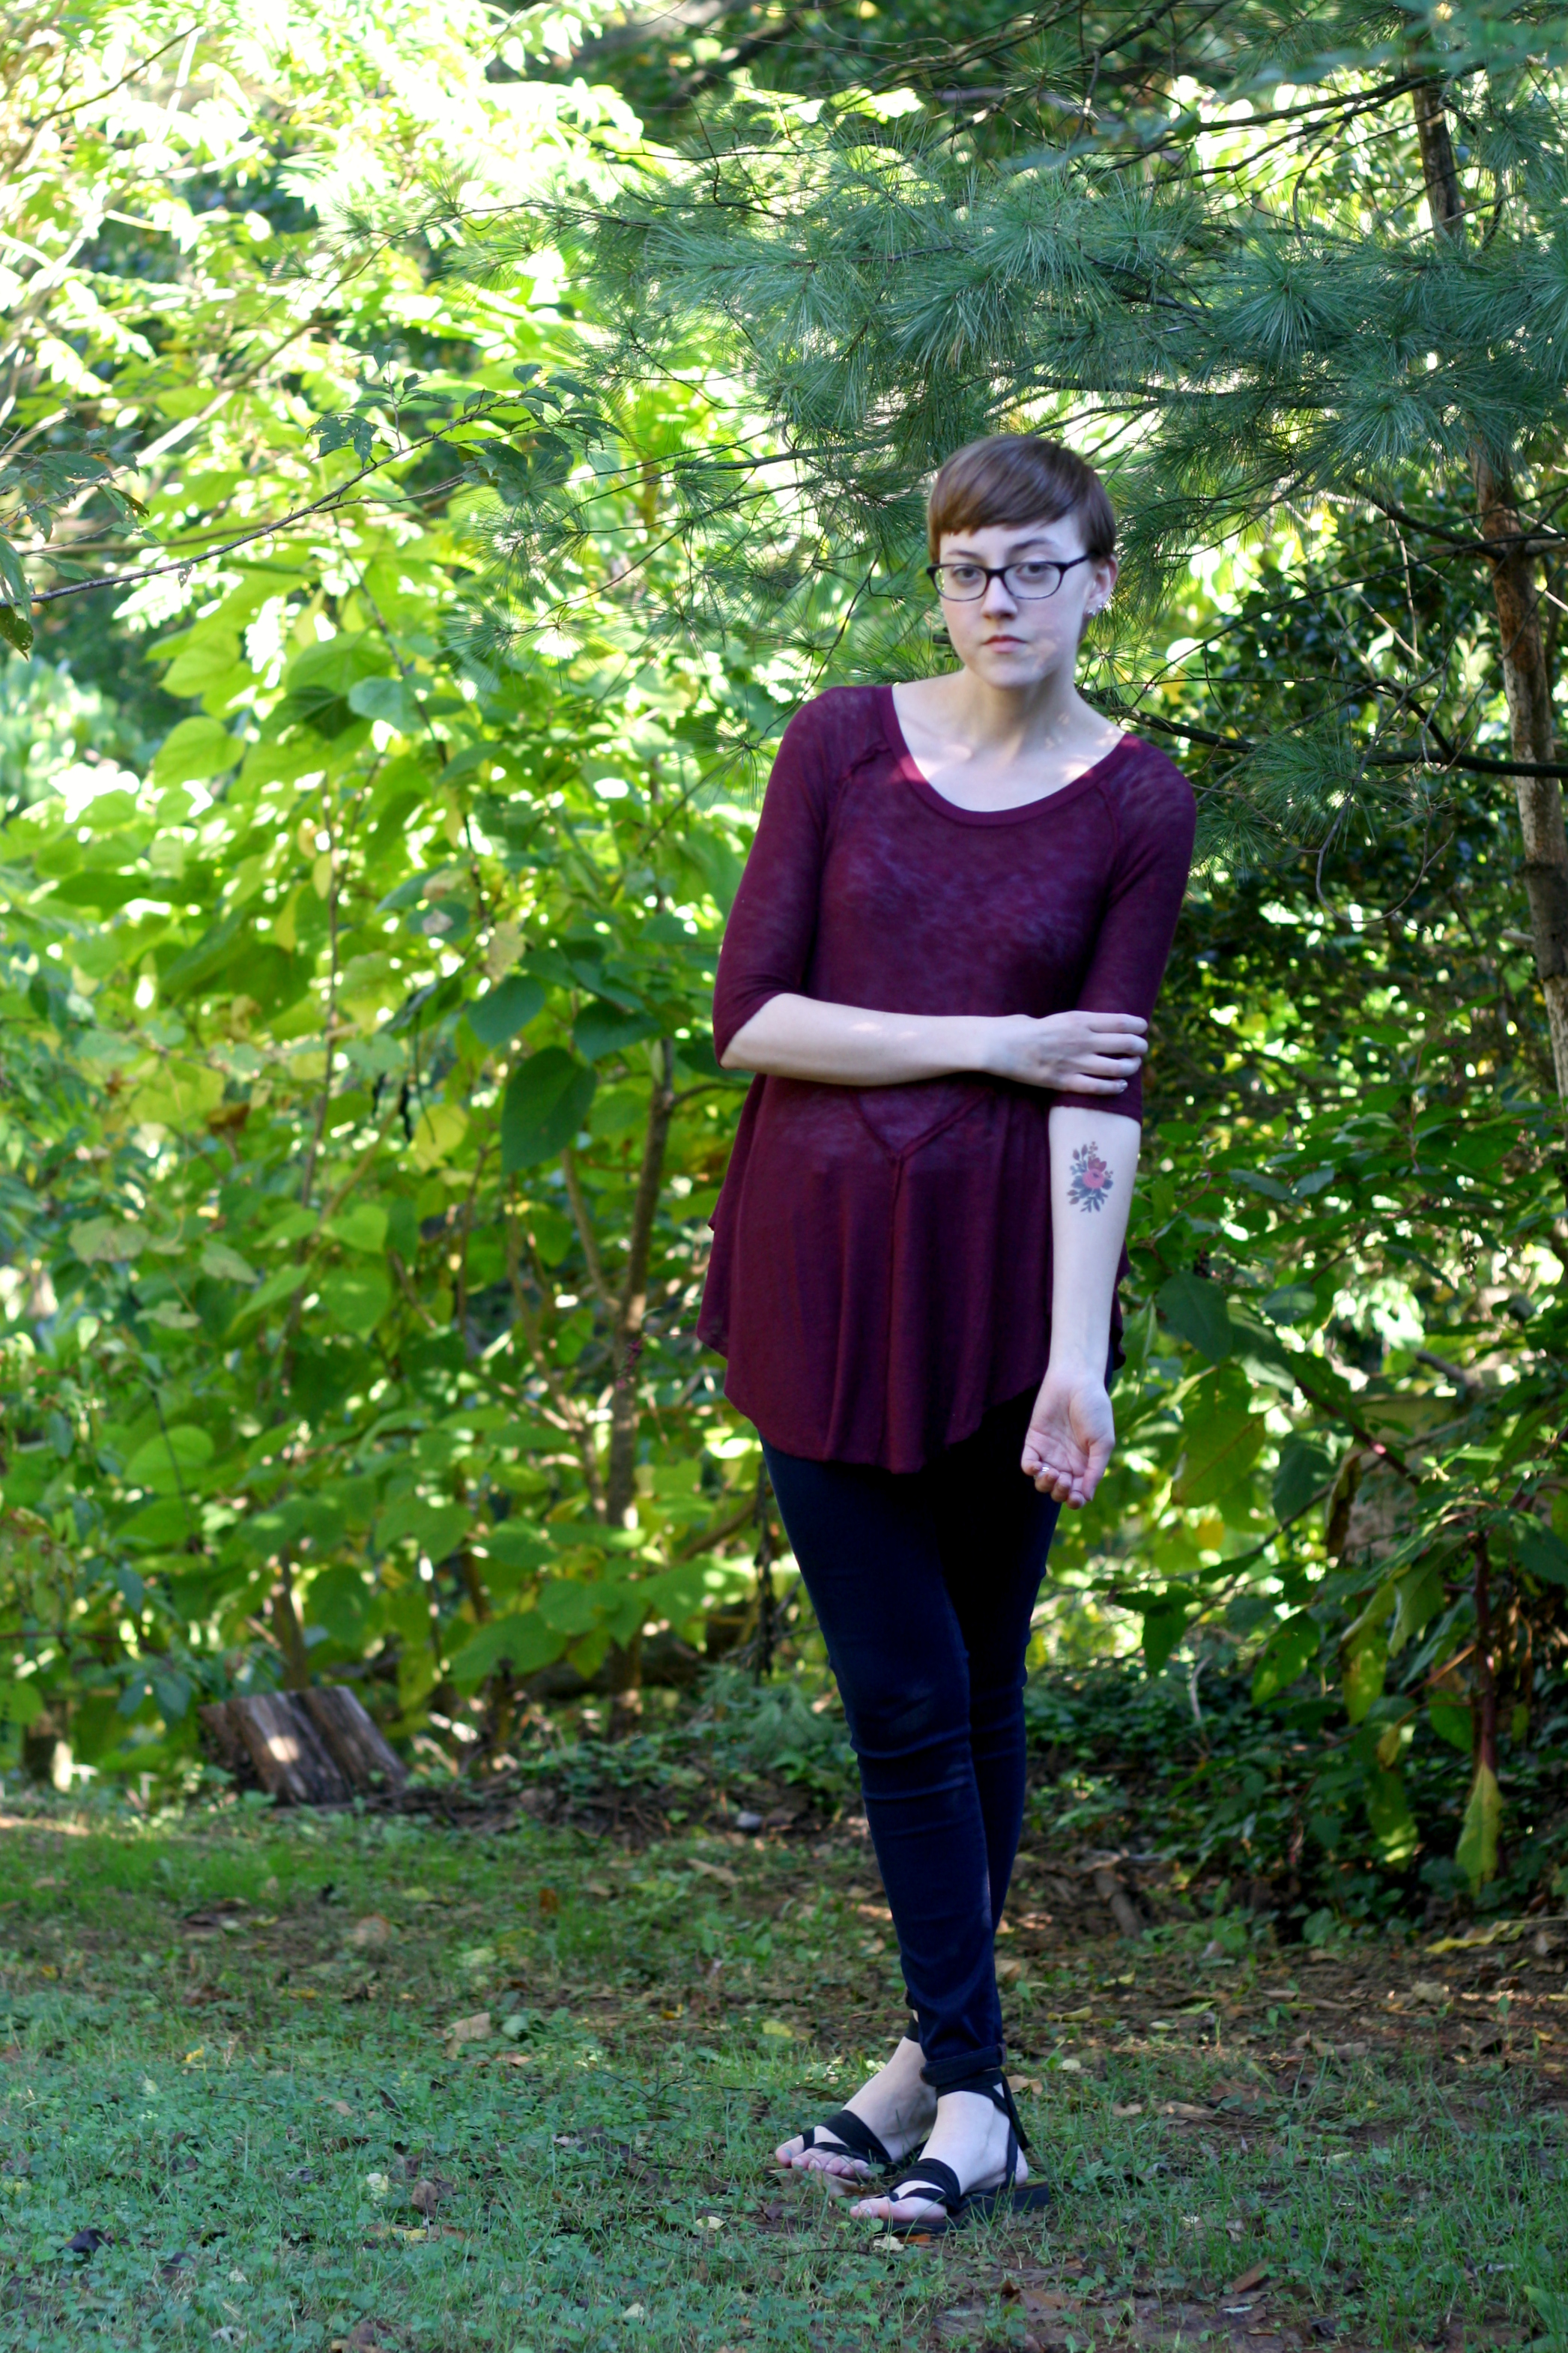 tattly tattoo outfit, stylewiseguide.com